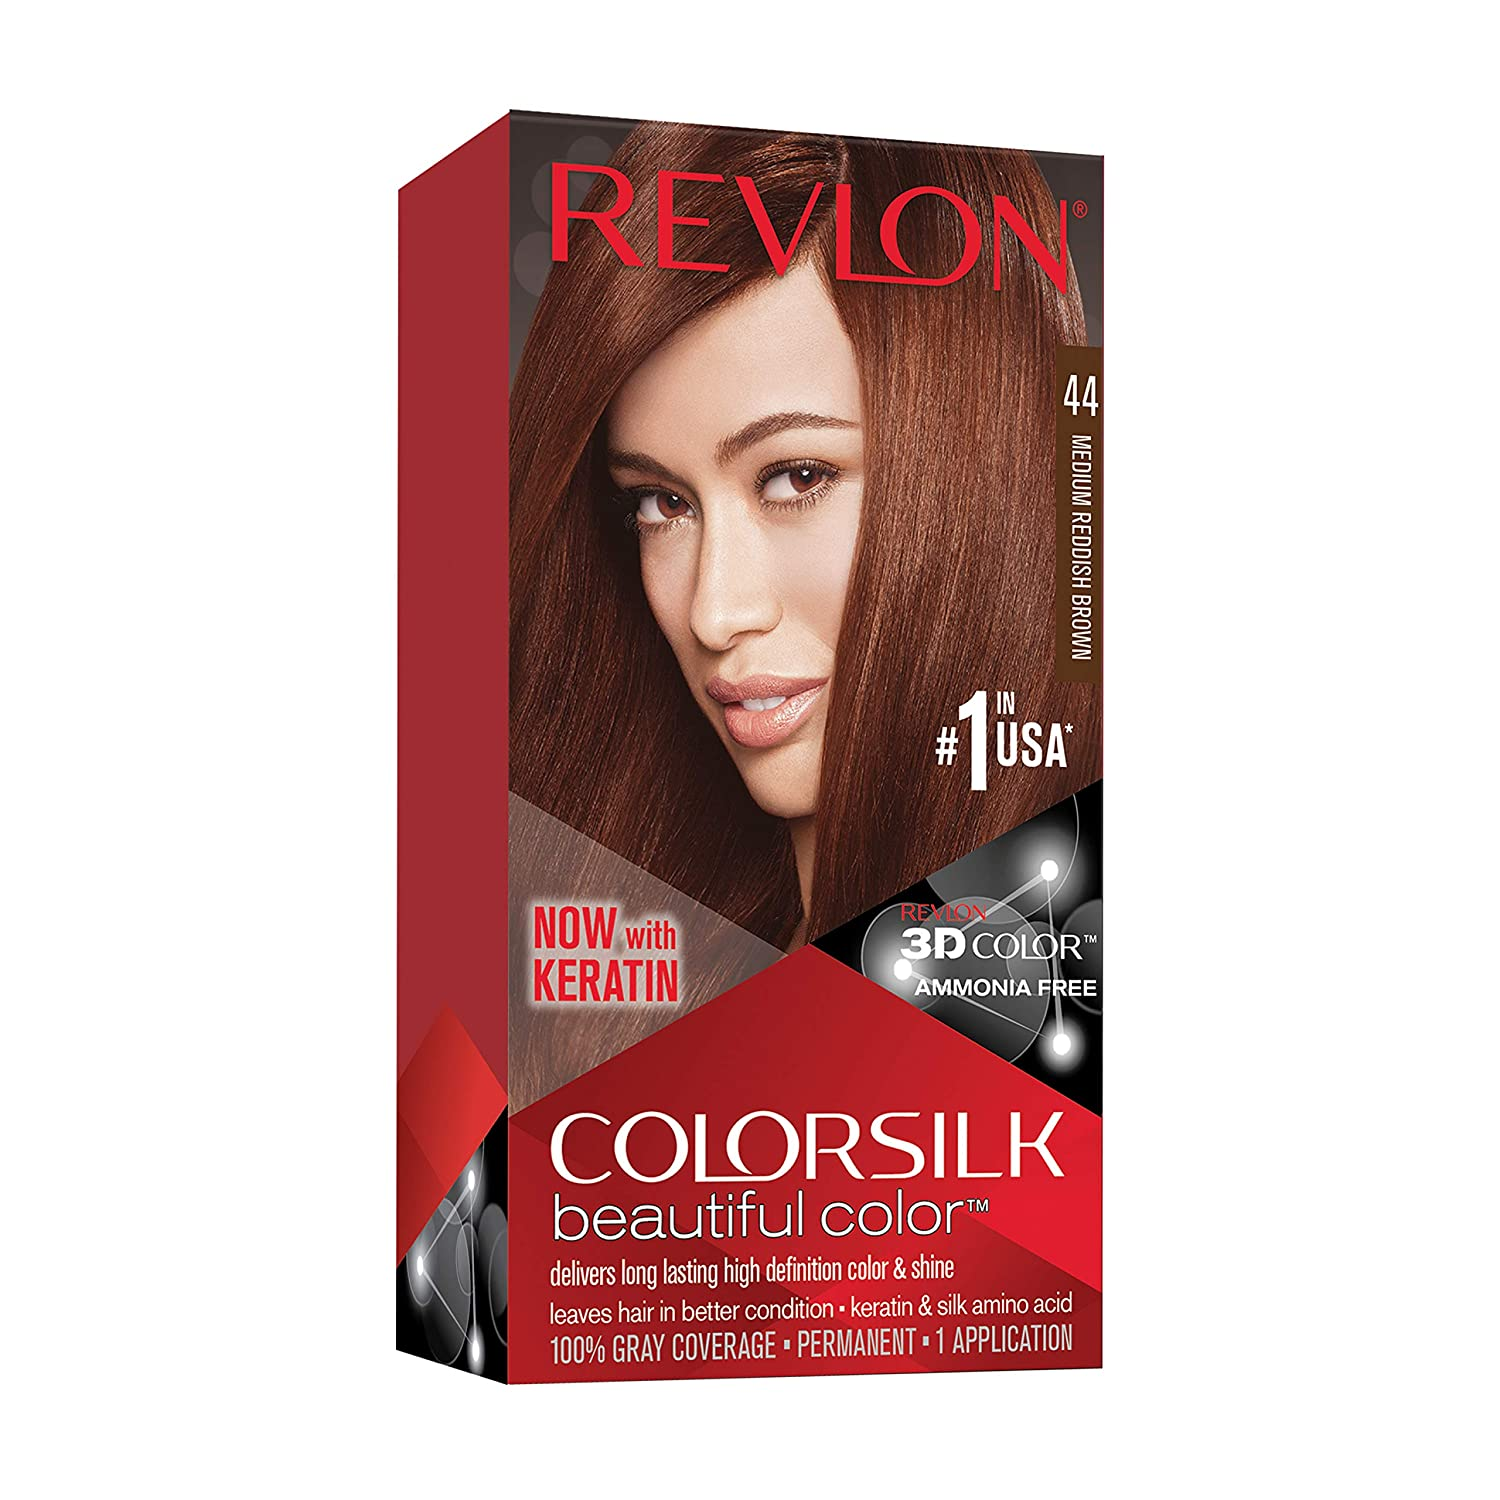 Revlon Colorsilk Beautiful Color, Permanent Hair Dye with Keratin, 100% Gray Coverage, Ammonia Free, 44 Medium Reddish Brown